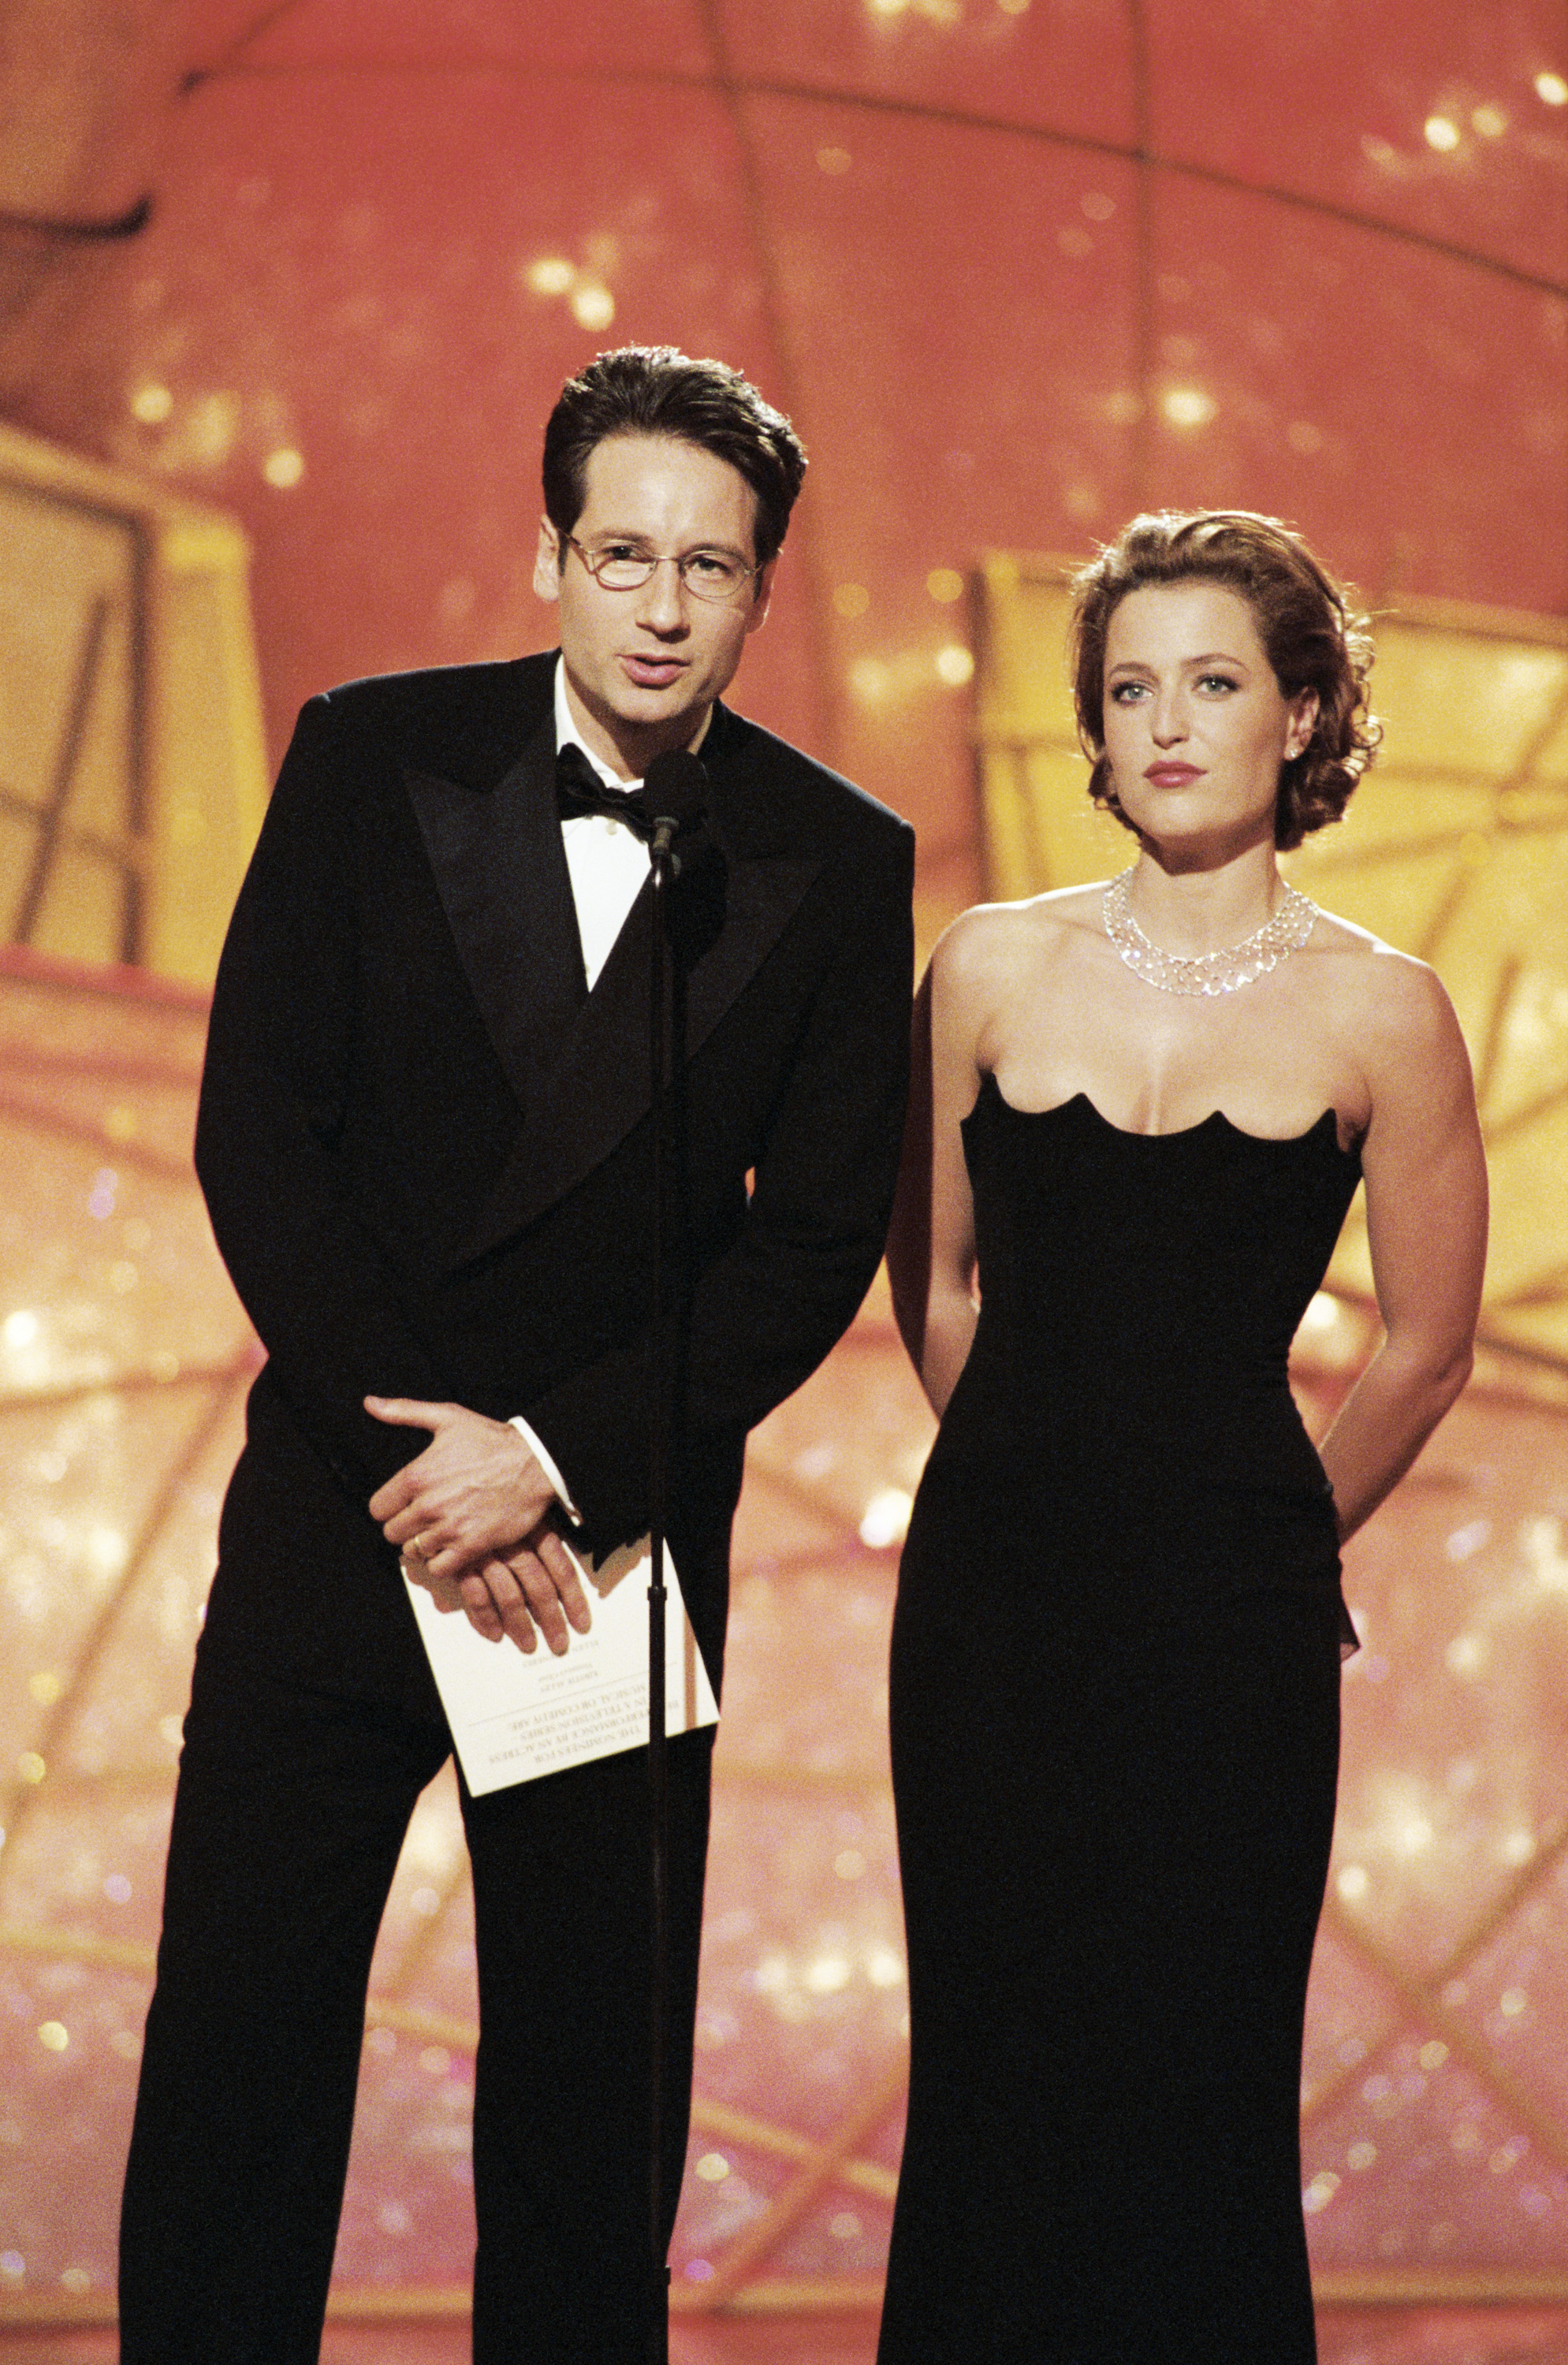 David Duchovny and Gillian Anderson are seen onstage during the 55th Annual Golden Globe Awards in Beverly Hills, Calif. on Jan. 18, 1998.